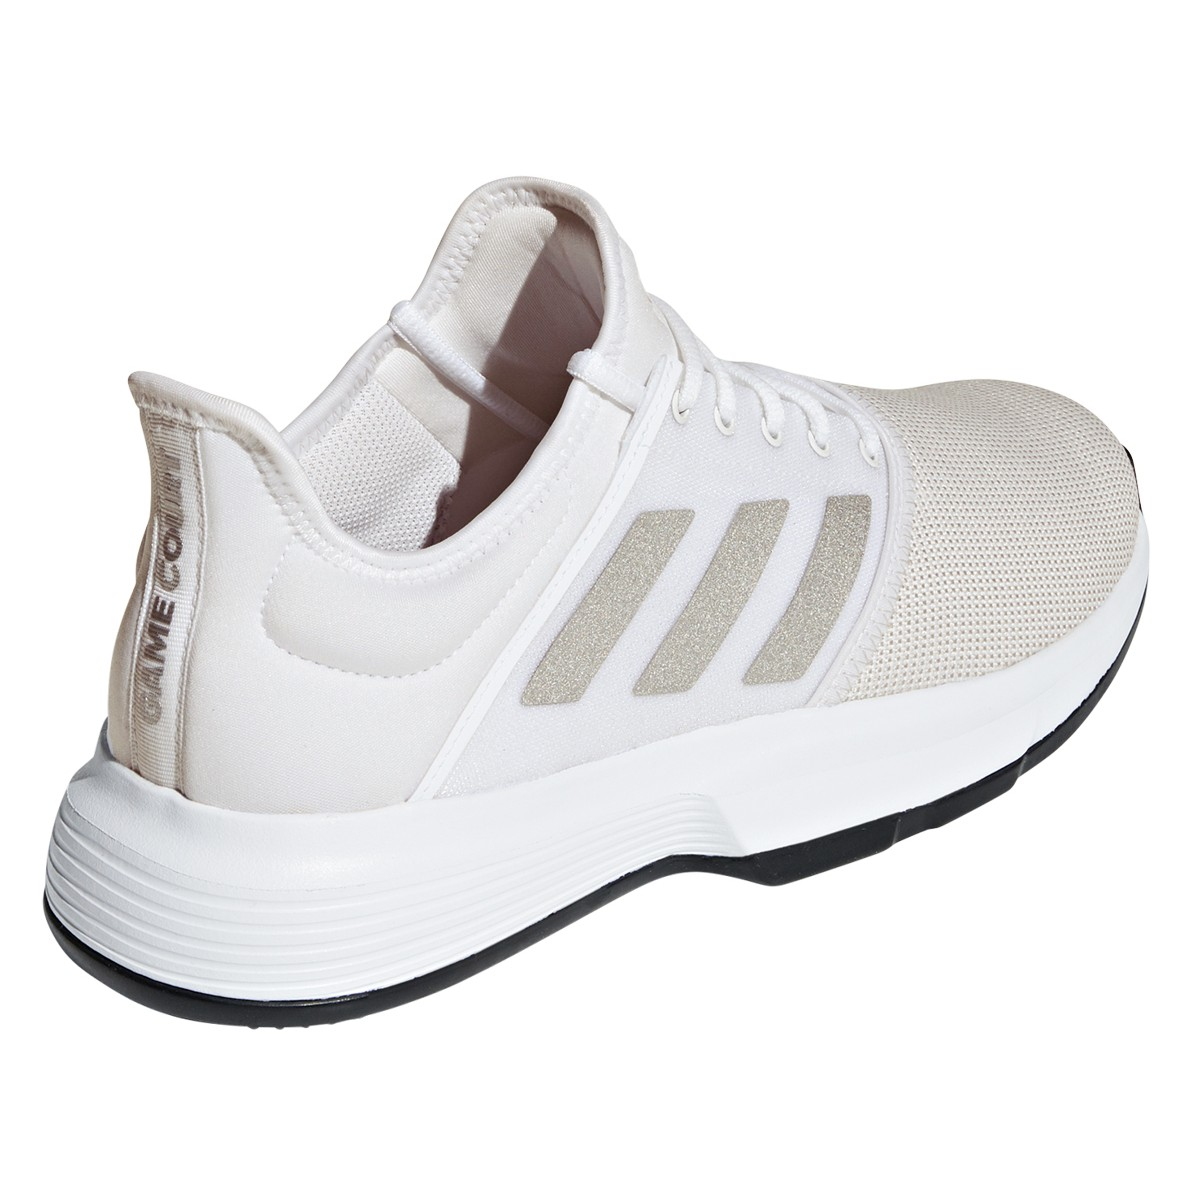 Gamecourt Adidas Toutes Surfaces Chaussures Homme 1FKJlc3T